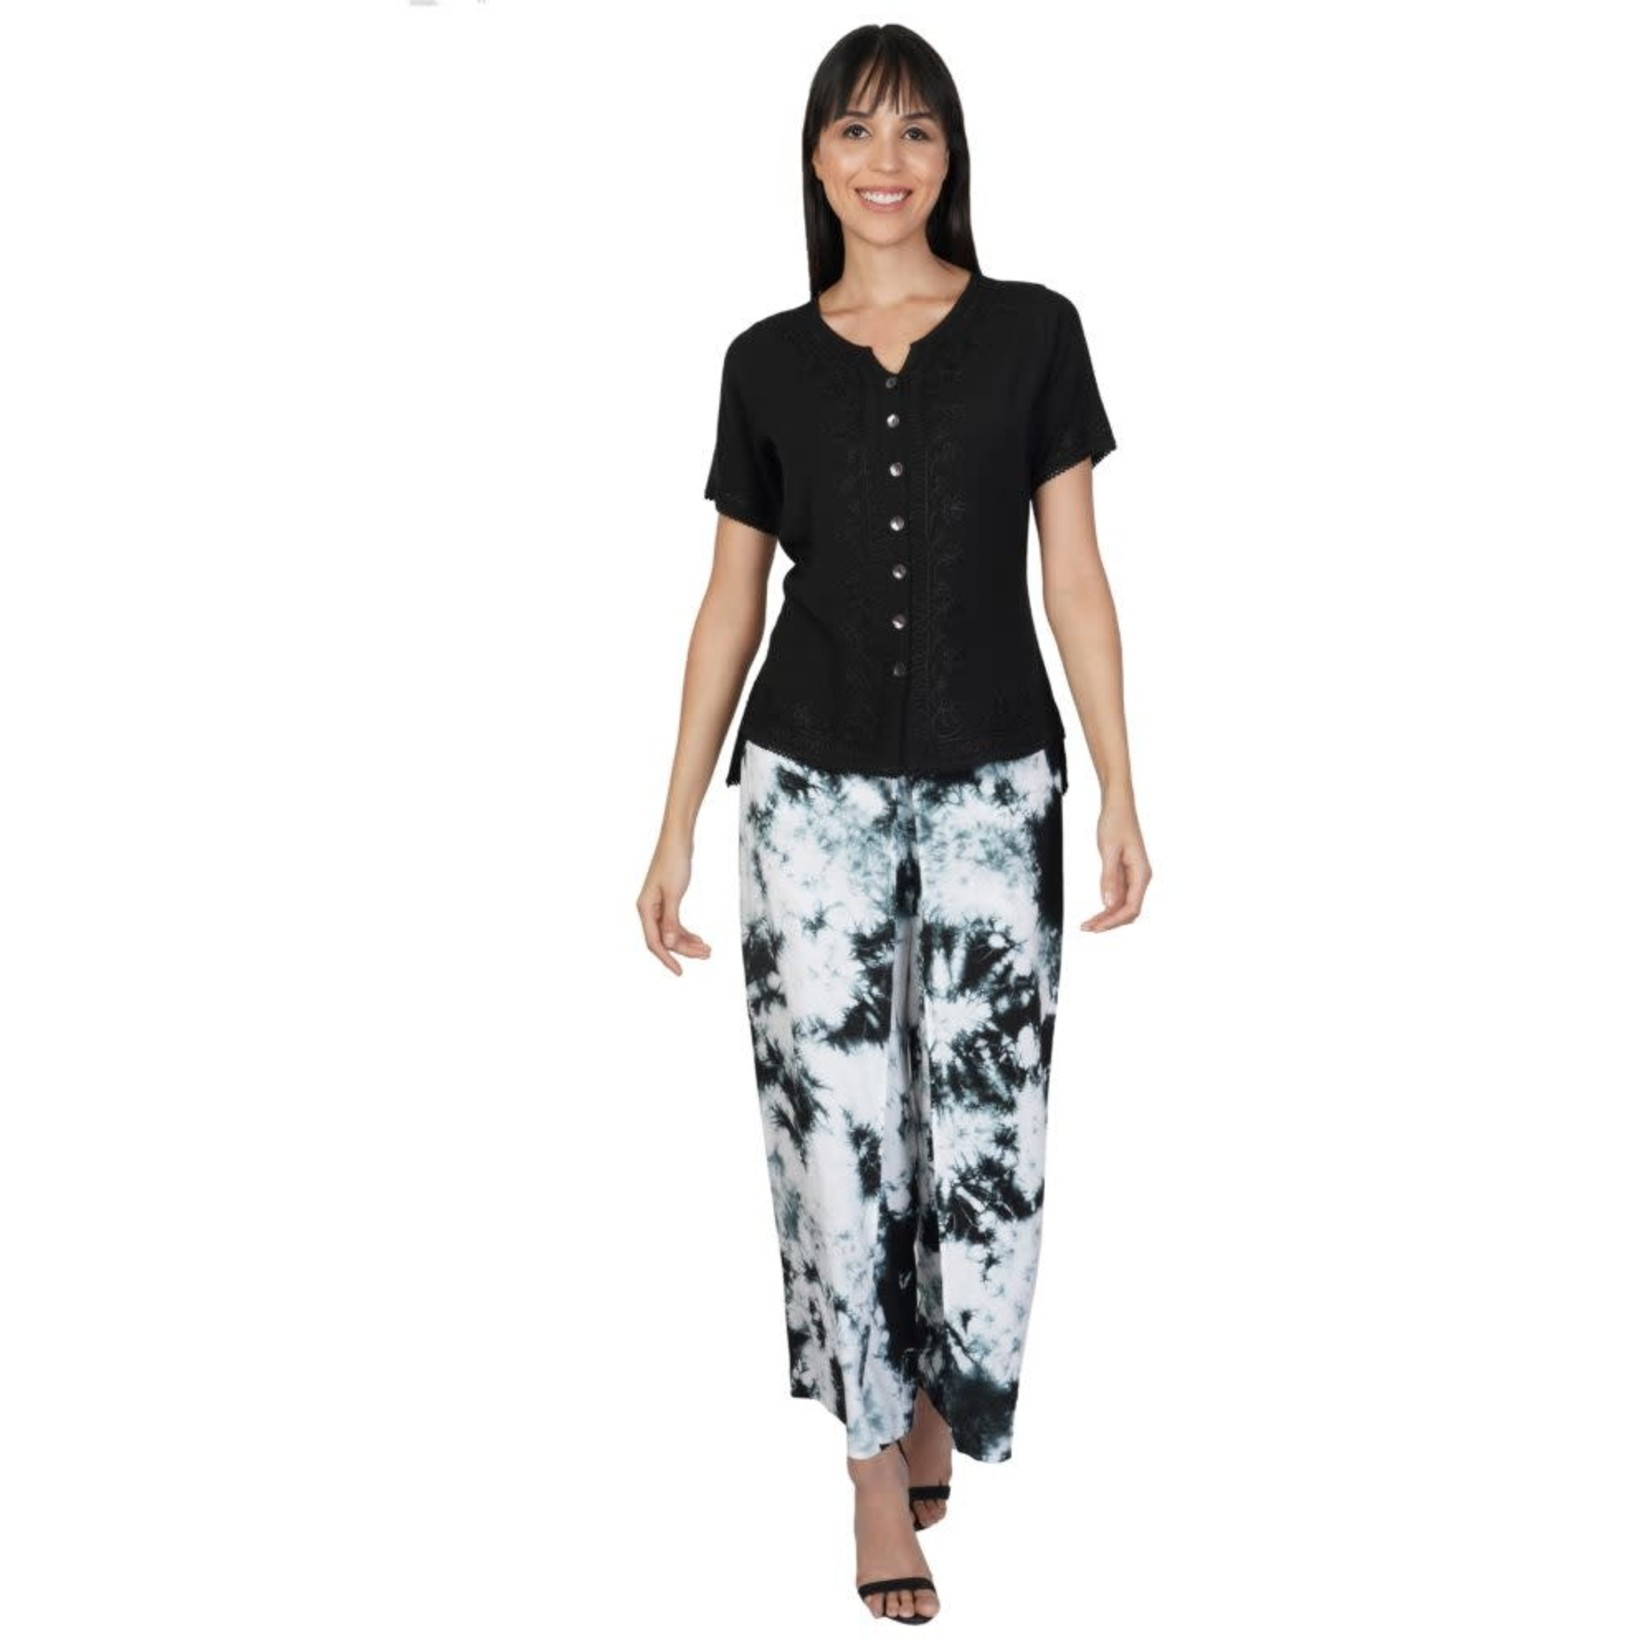 Parsley and Sage Melodie Short Sleeve Black Top w/ Embroidered Design